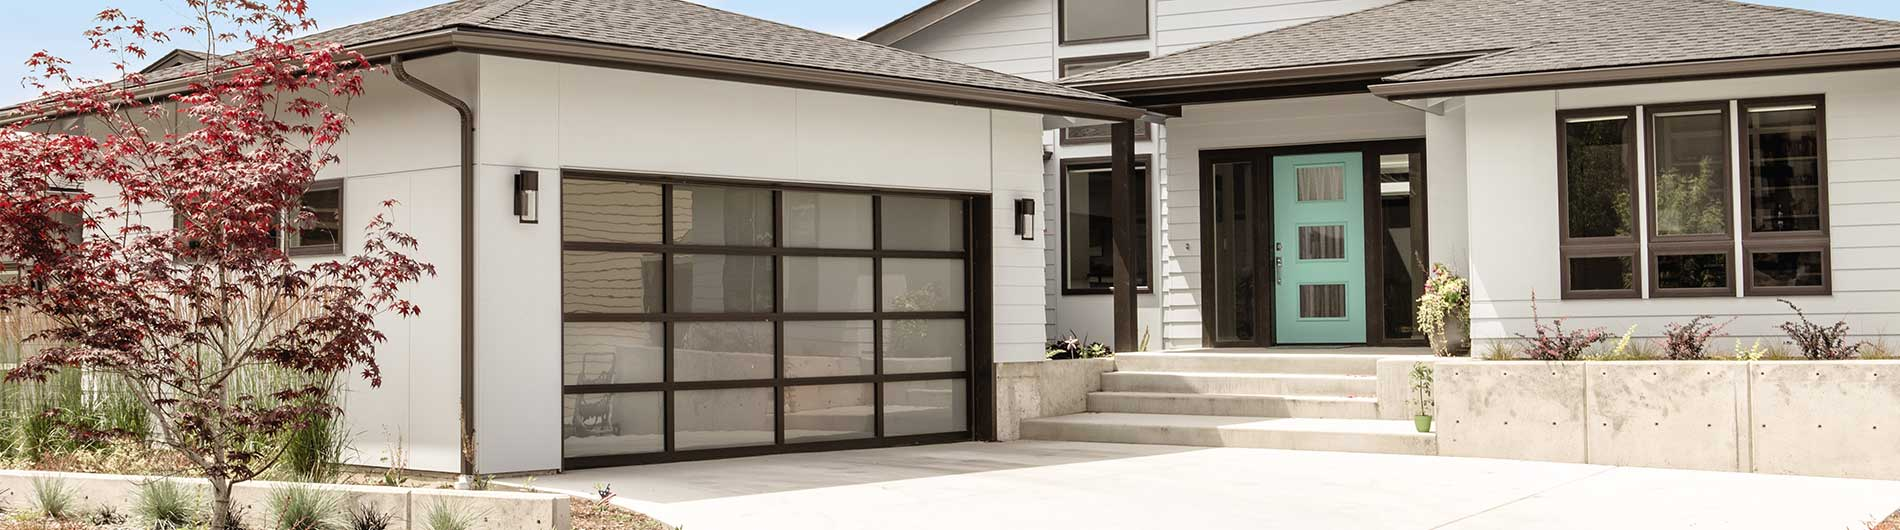 What are the advantages and disadvantages of the material of aluminium alloy glass garage door?